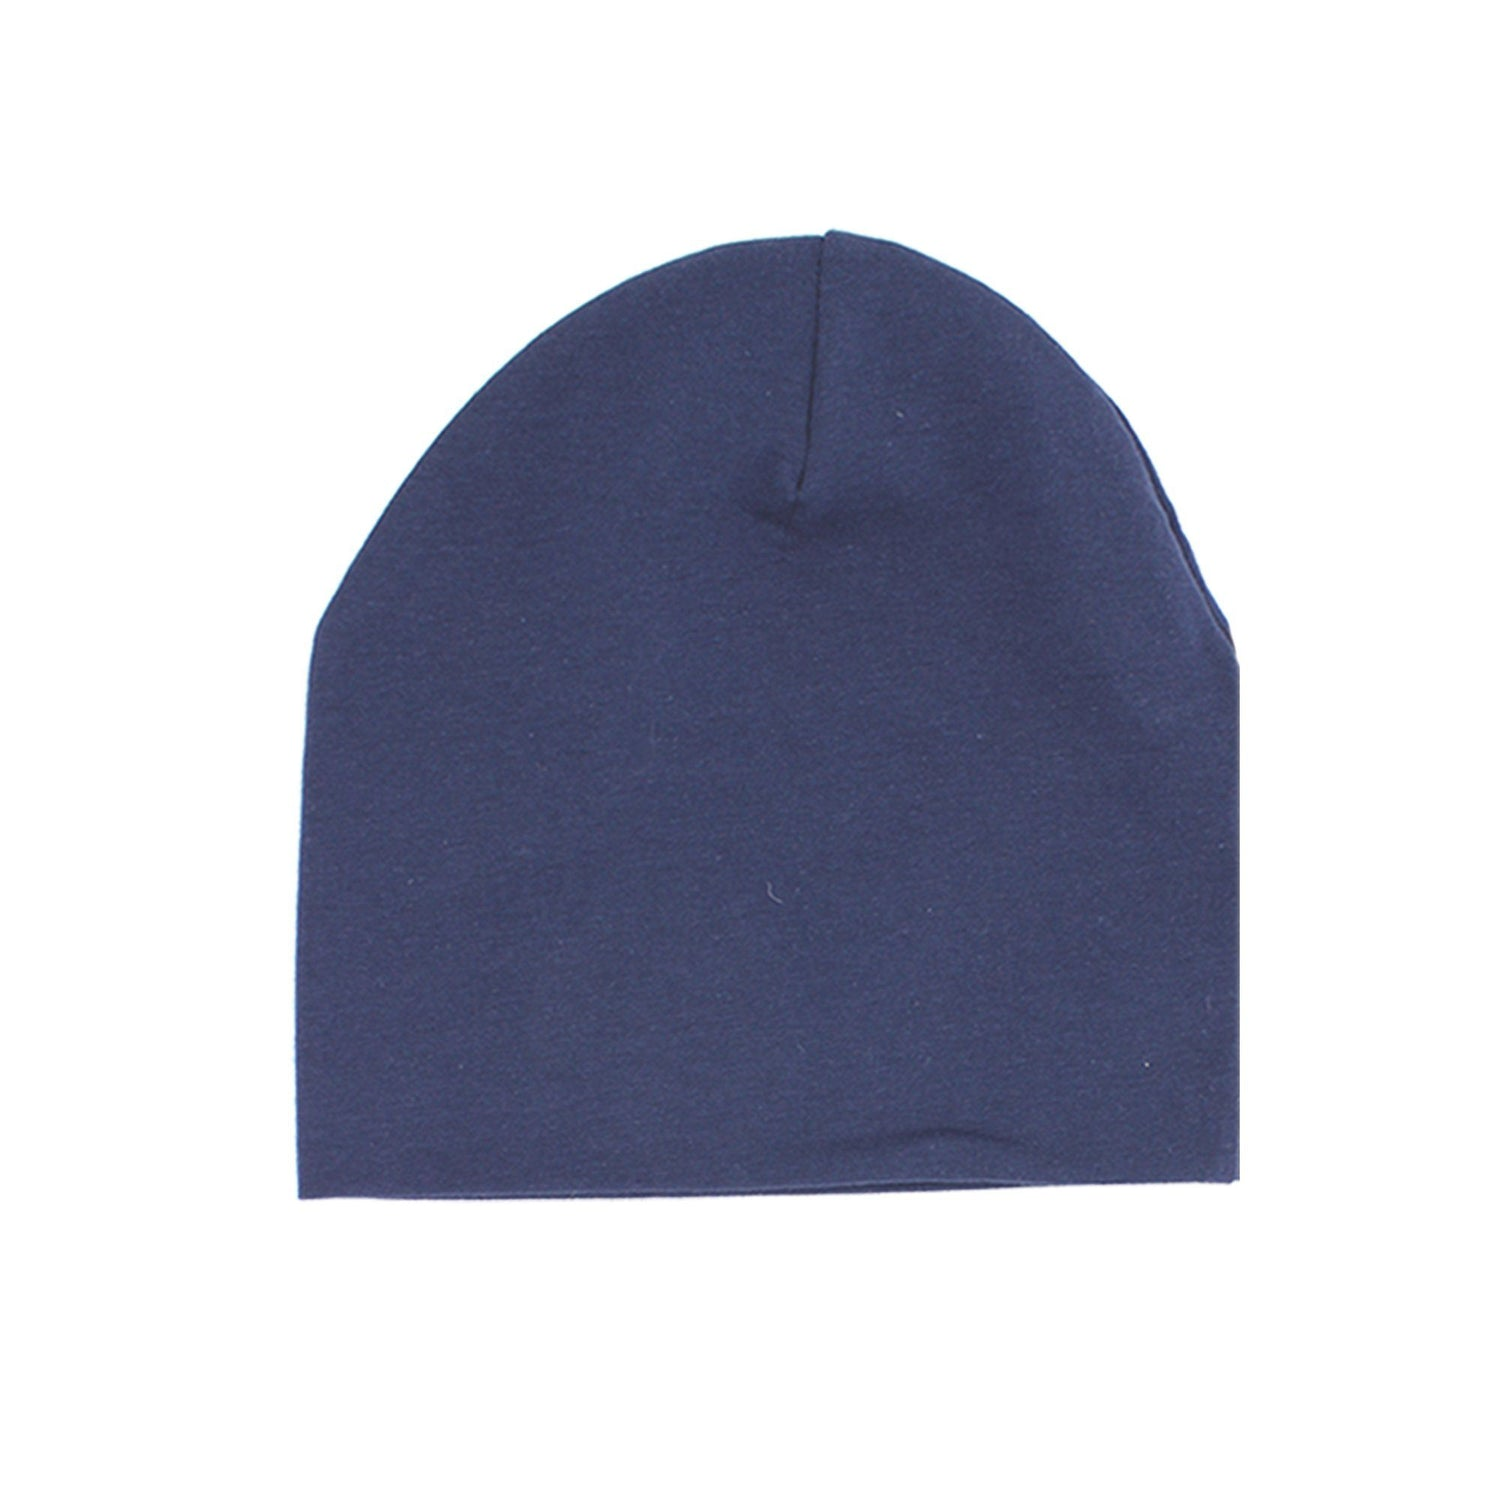 Cotton Henley Beanie Maniere Accessories Navy 3 Month